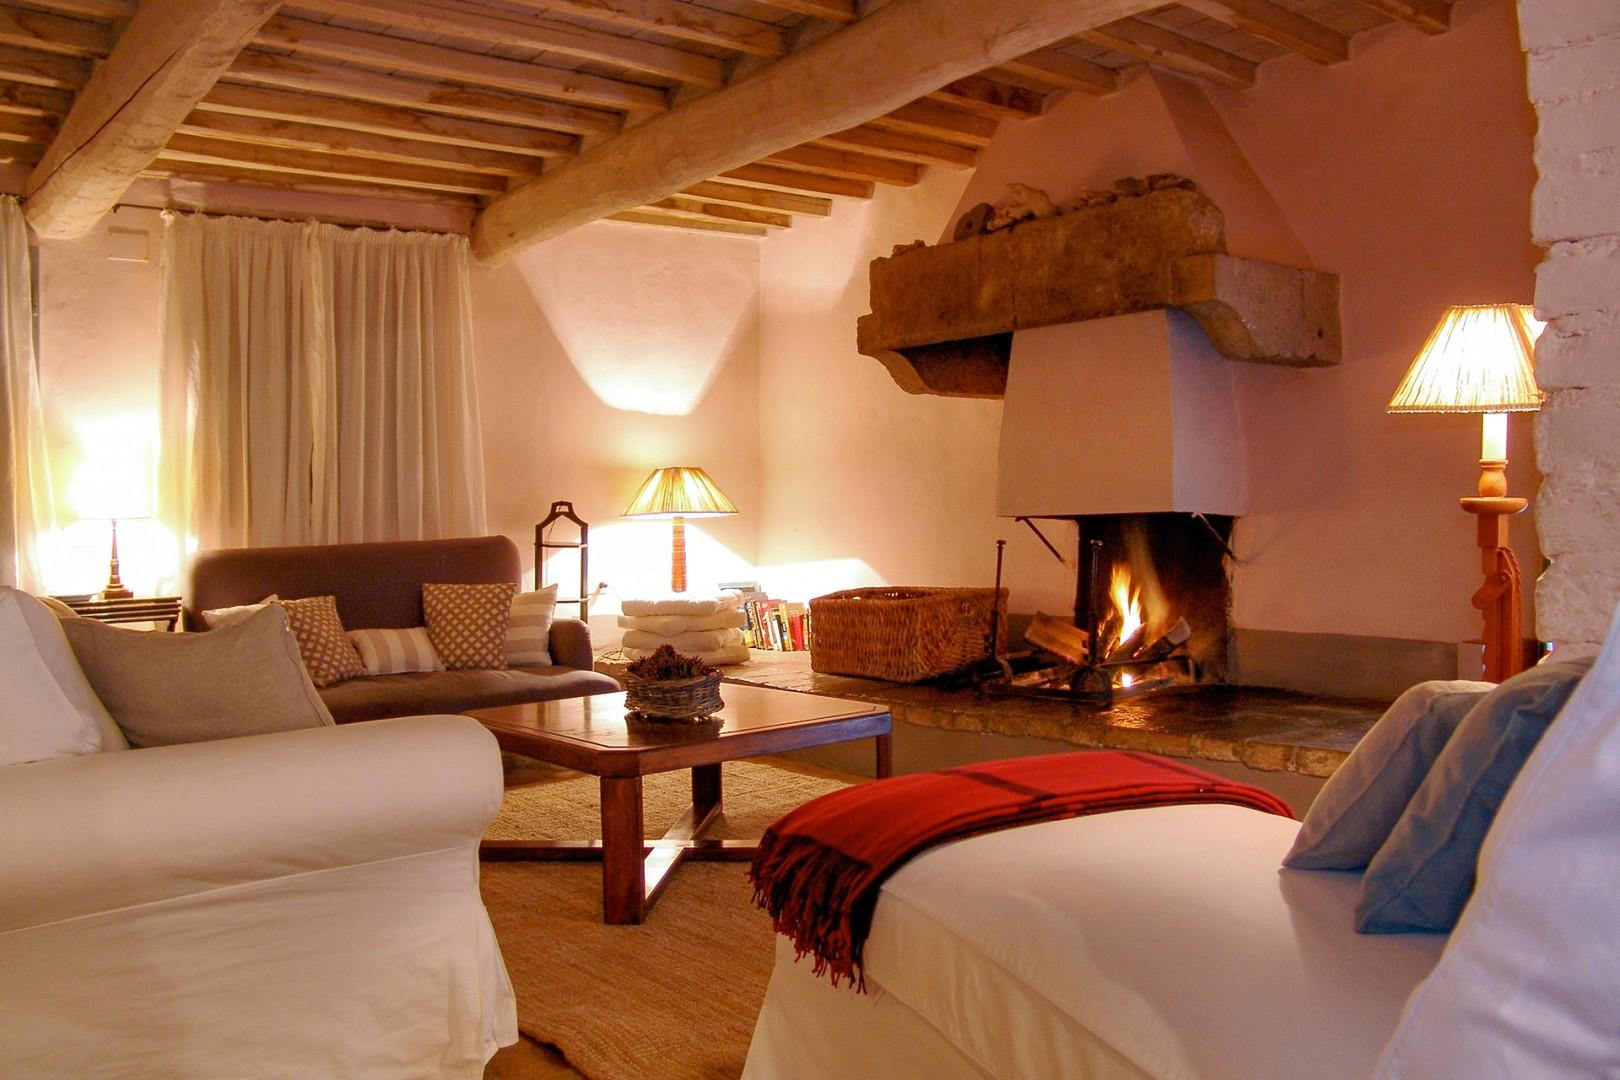 Original wooden ceiling beams add to the rustic charm.